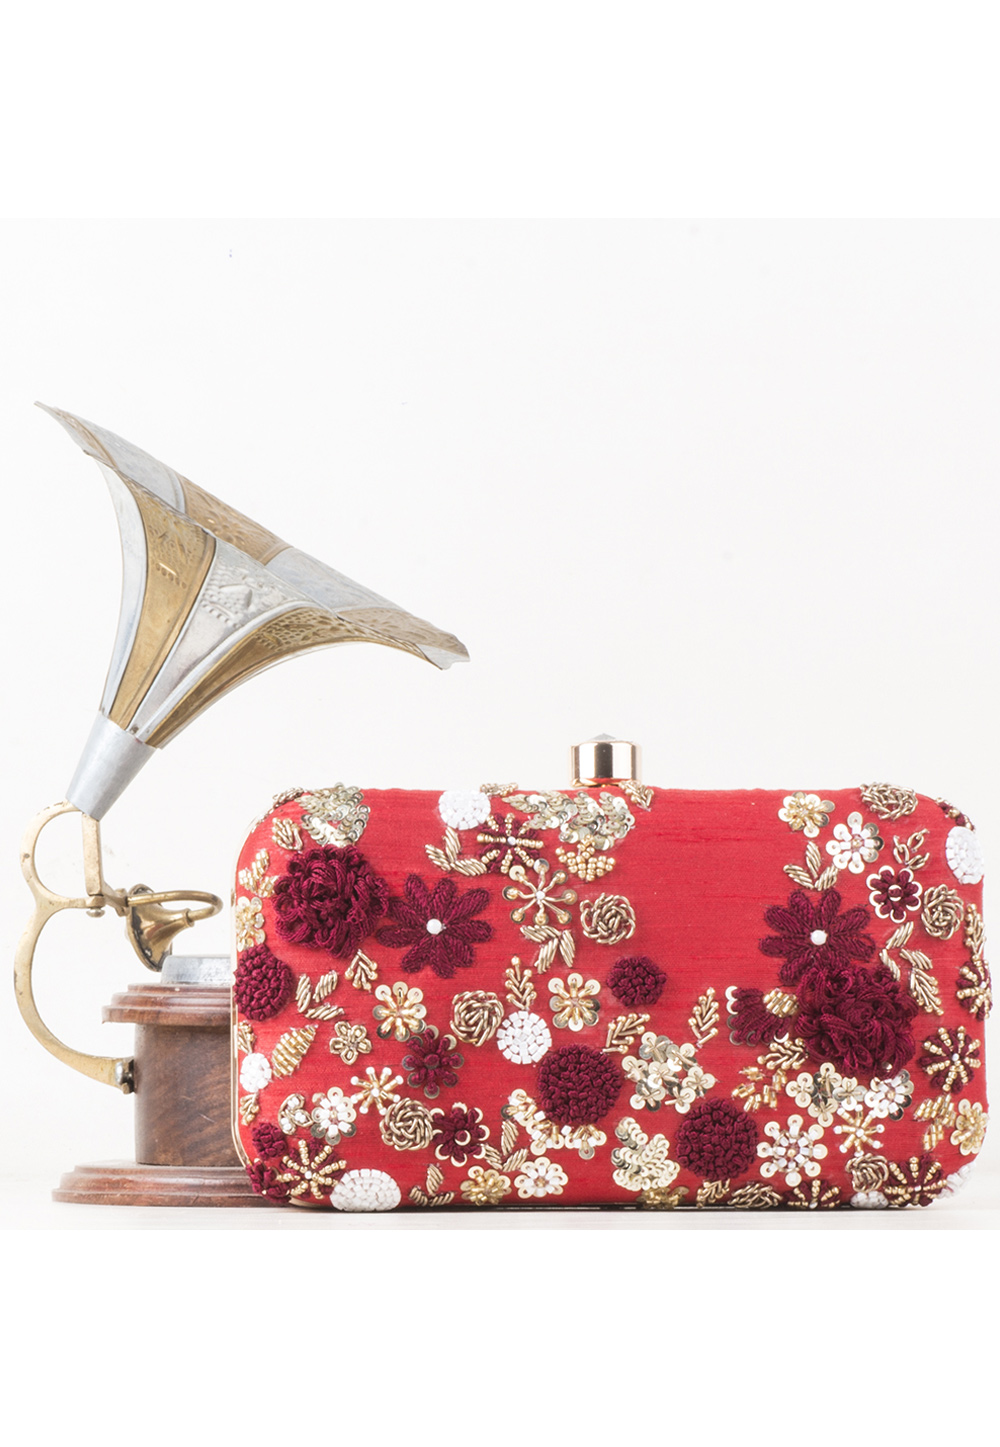 Red Synthetic Embroidered Clutch 177080